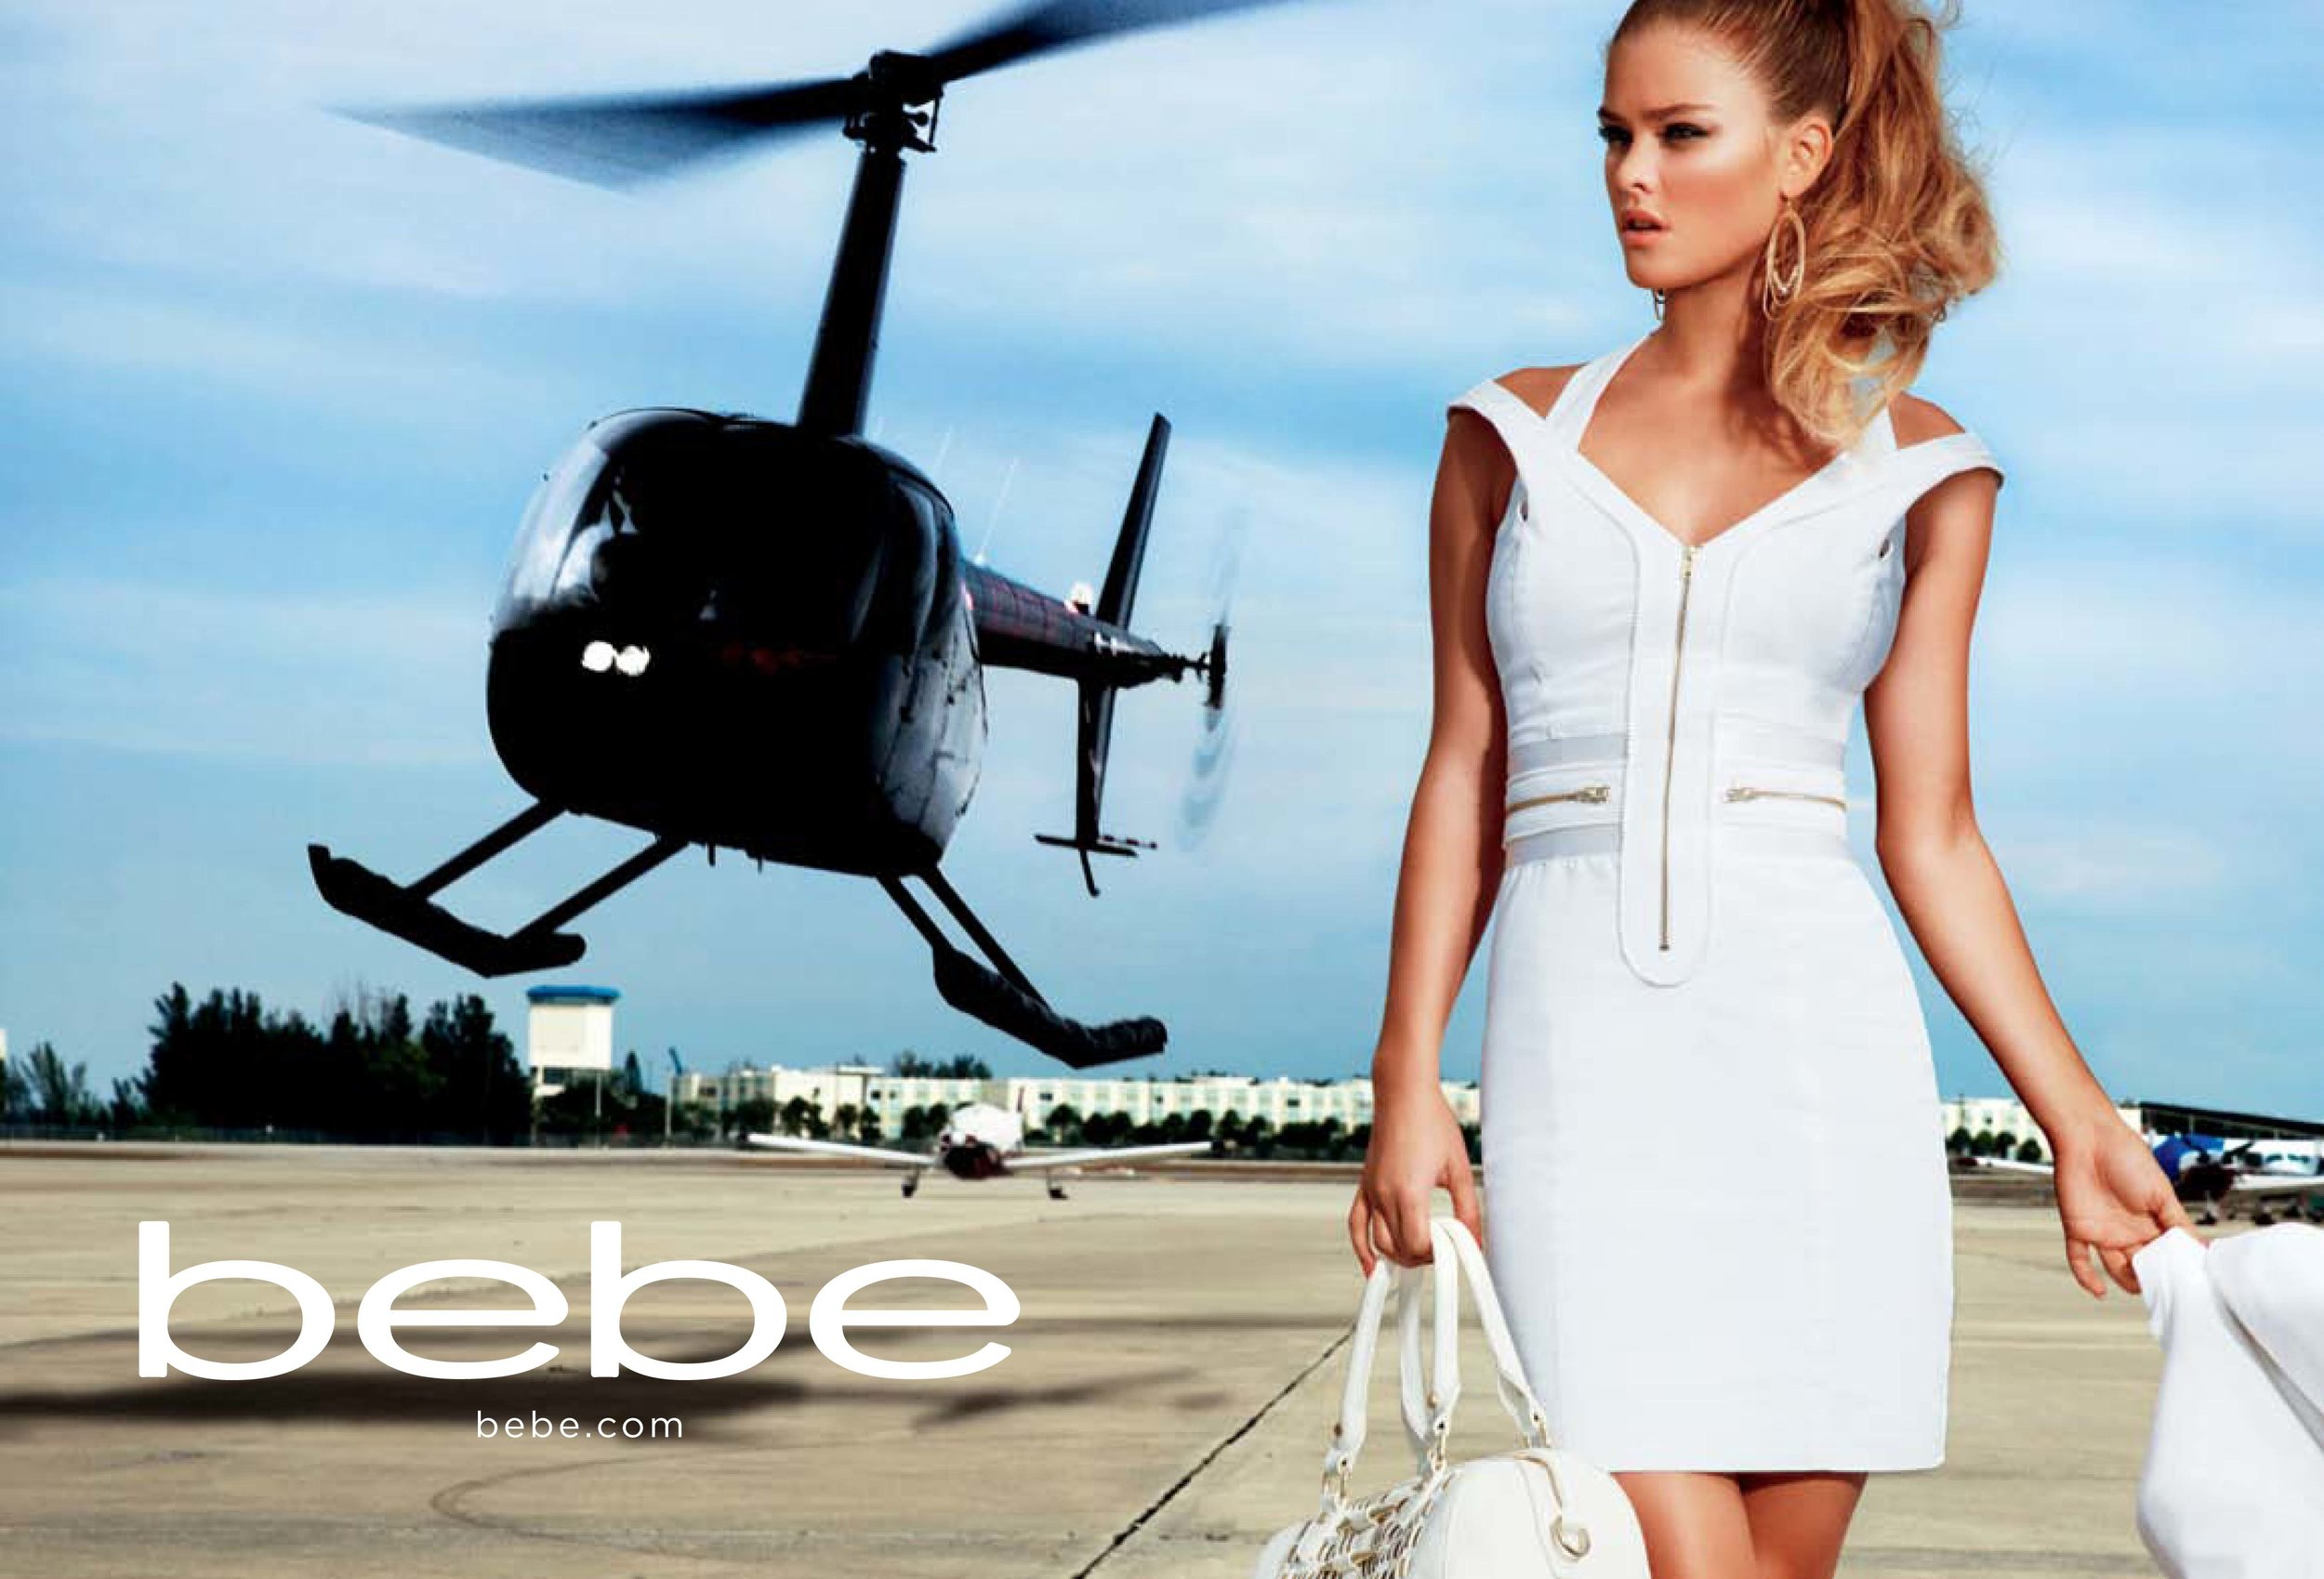 bebe_Glamour_Spring_4pageSPREAD-2.jpg